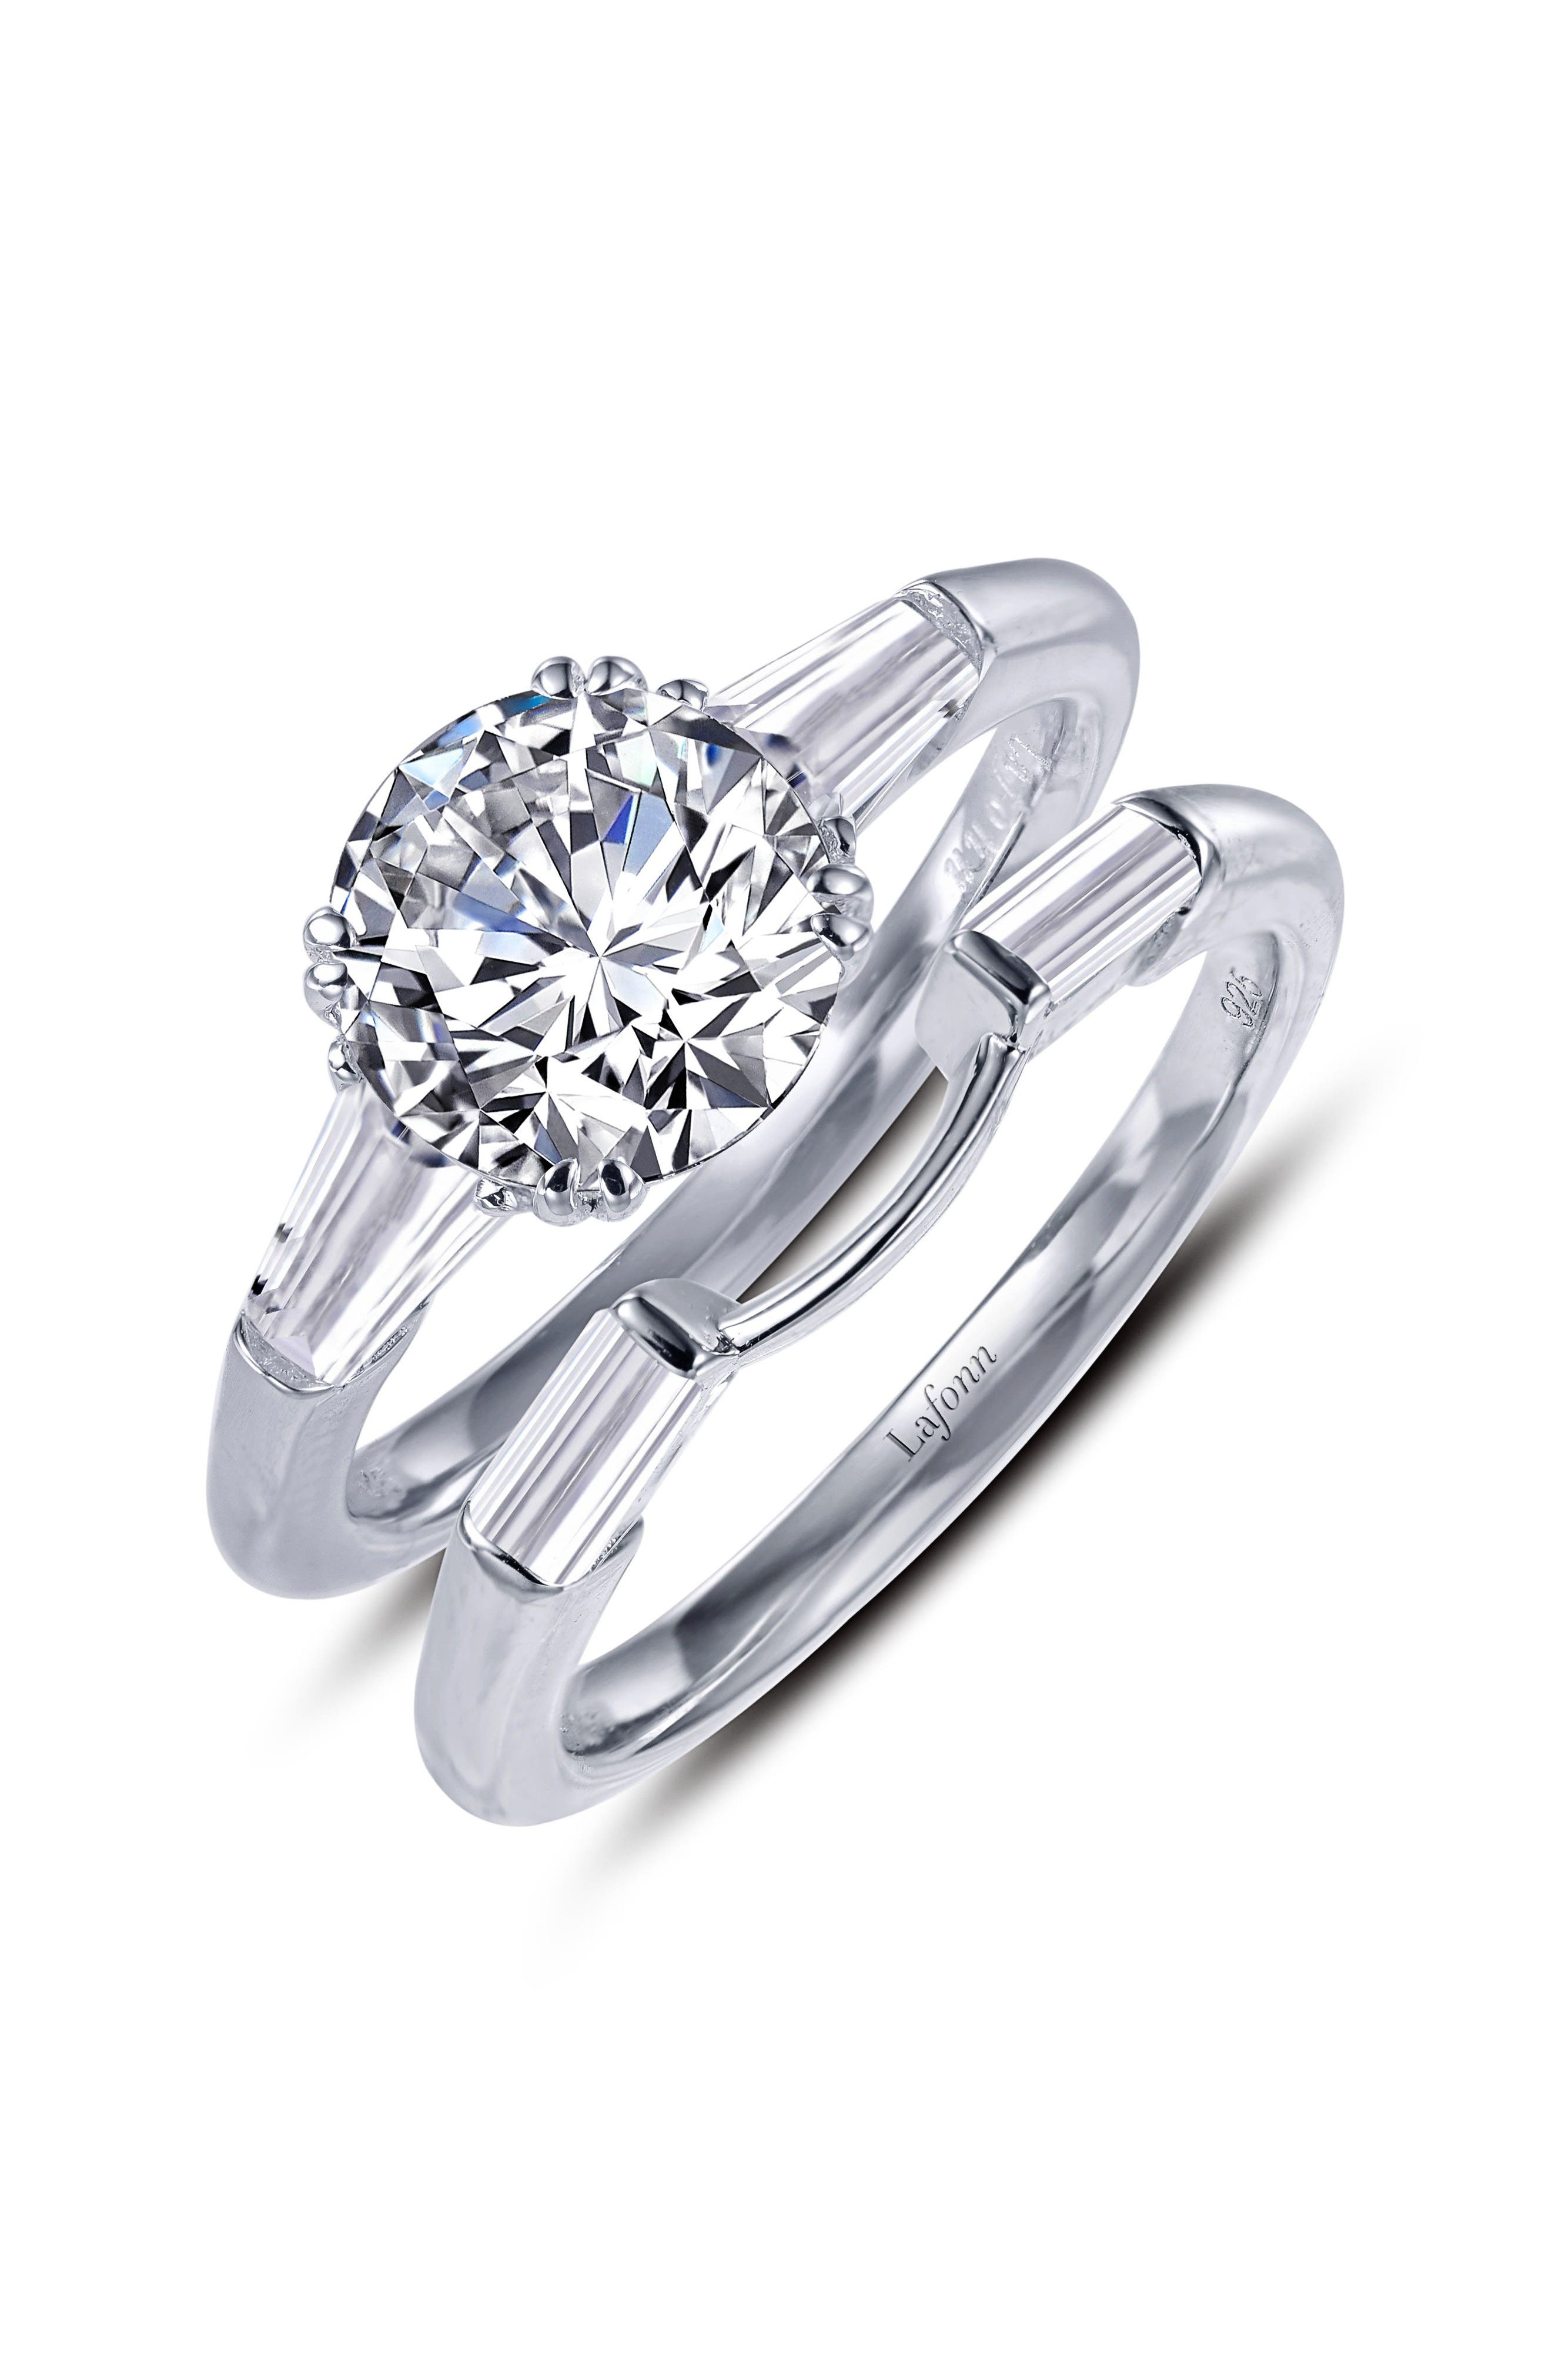 3-Stone Ring,                             Alternate thumbnail 3, color,                             SILVER/ CLEAR